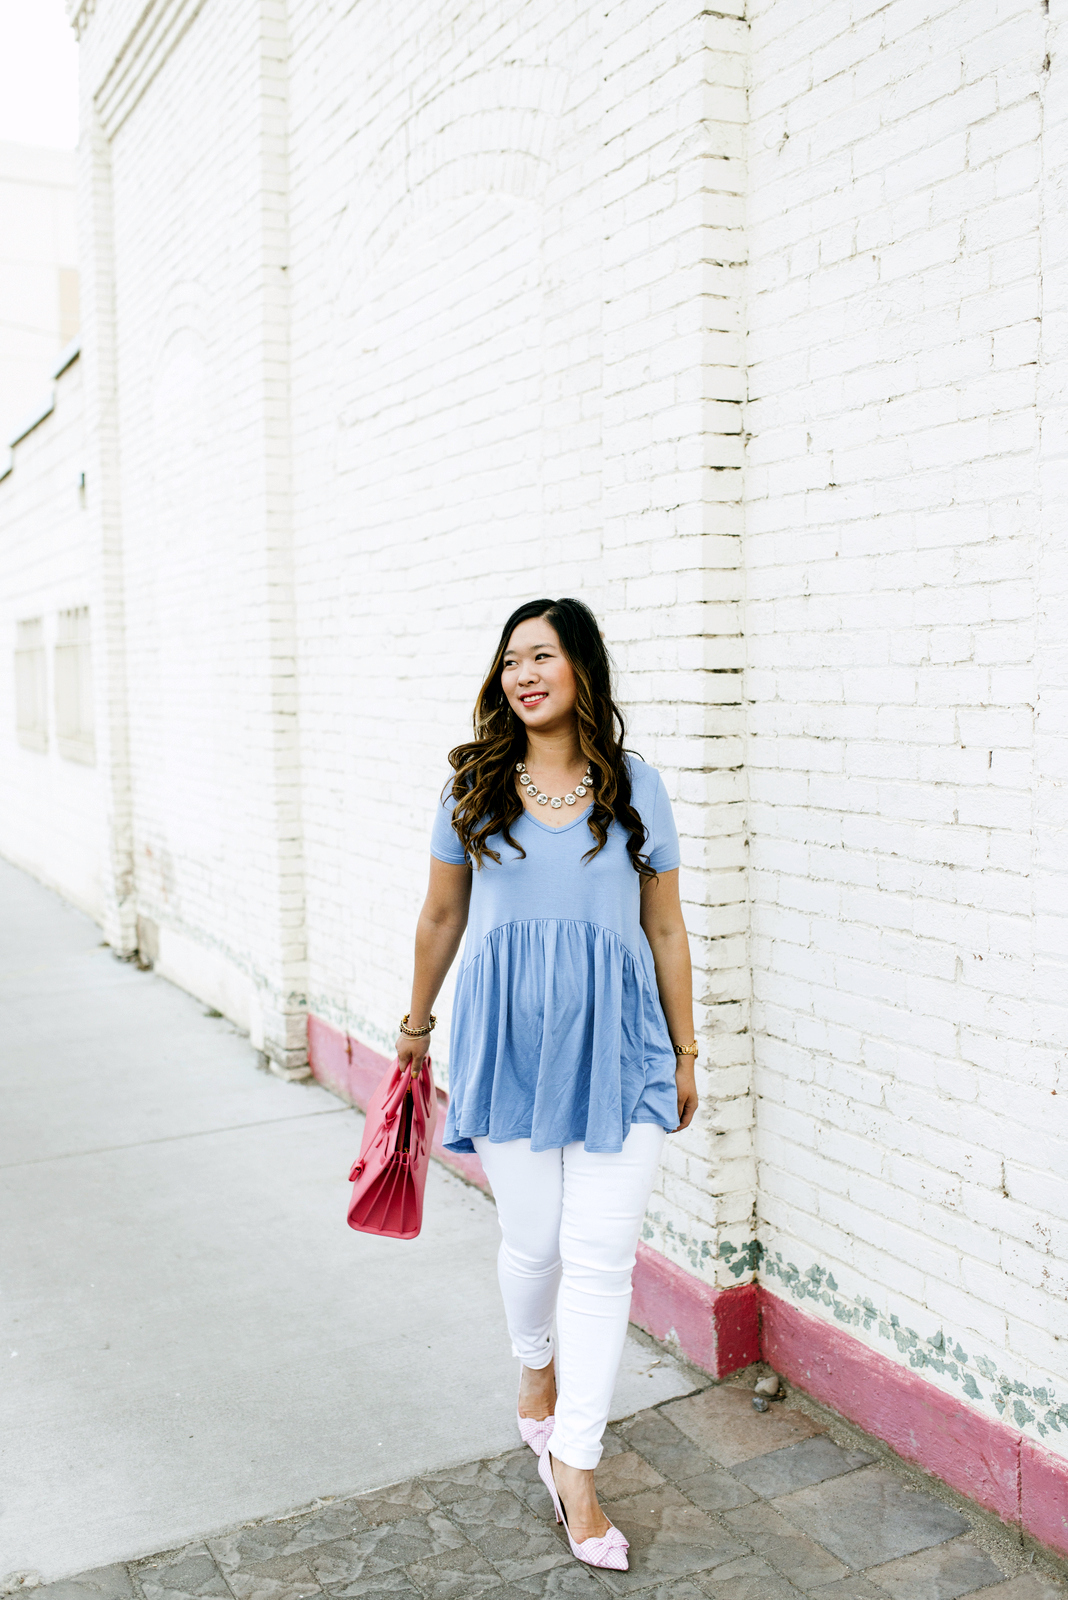 Tunic Styles For Day To Night by fashion blogger Sandy A La Mode